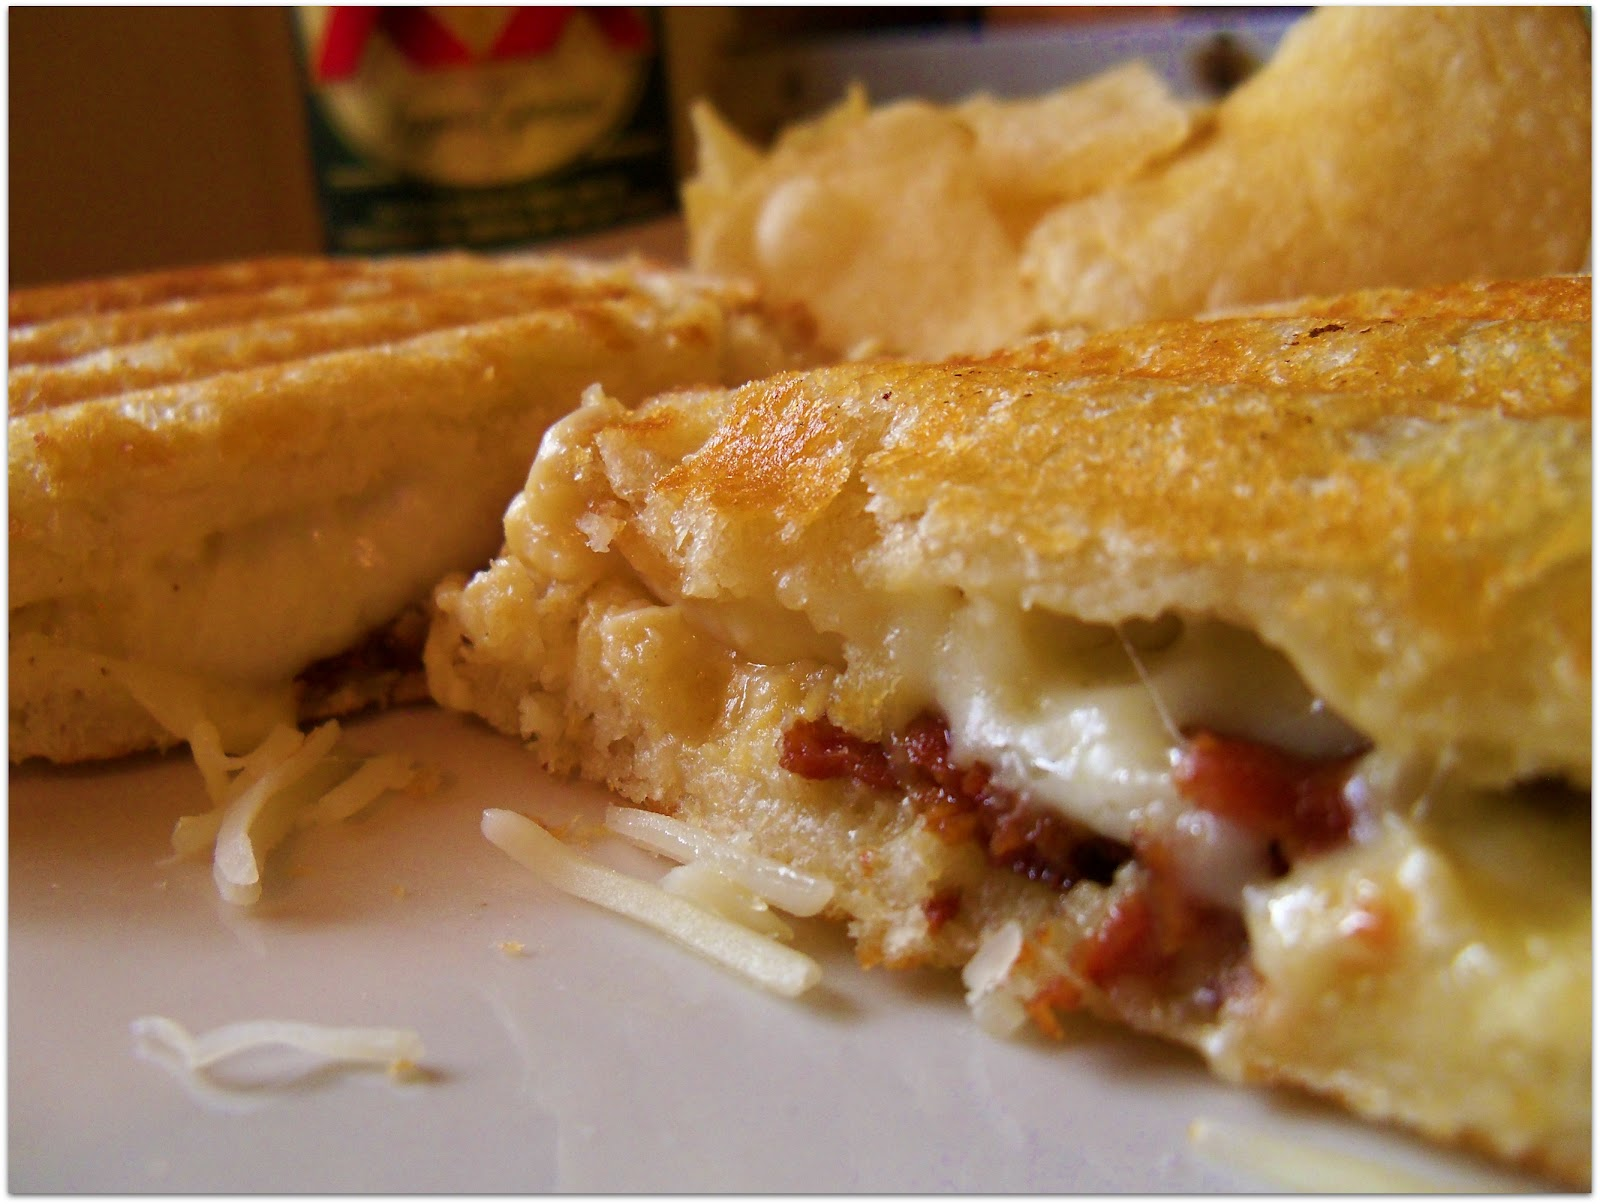 The Style Dossier: Ultimate Grilled Cheese Sandwich